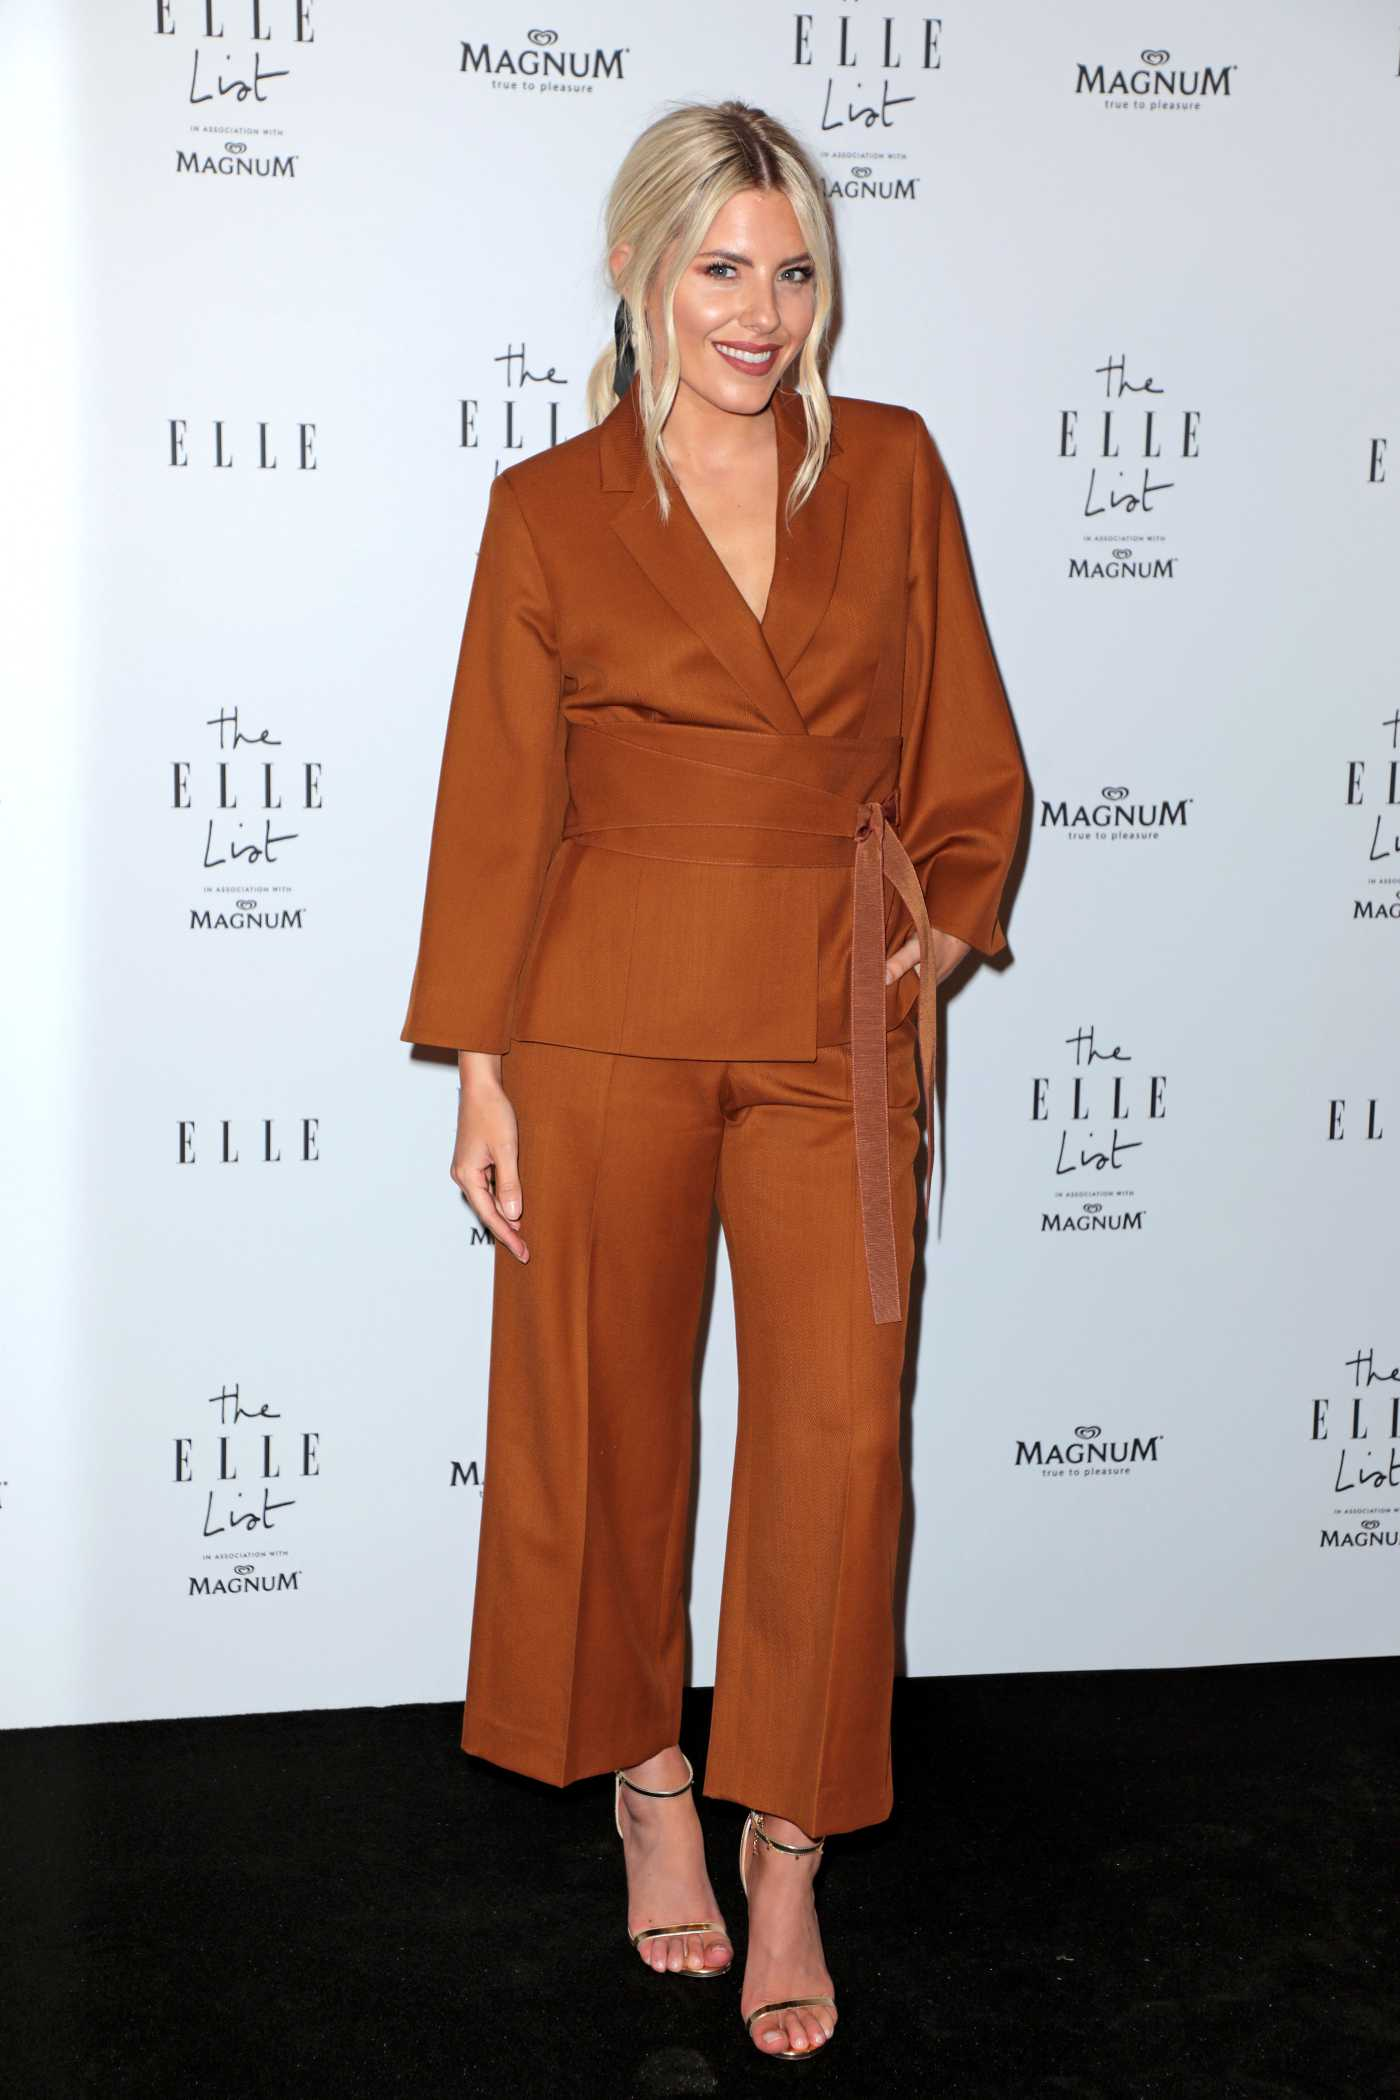 Mollie King Celebrates the ELLE List in London 06/19/2019